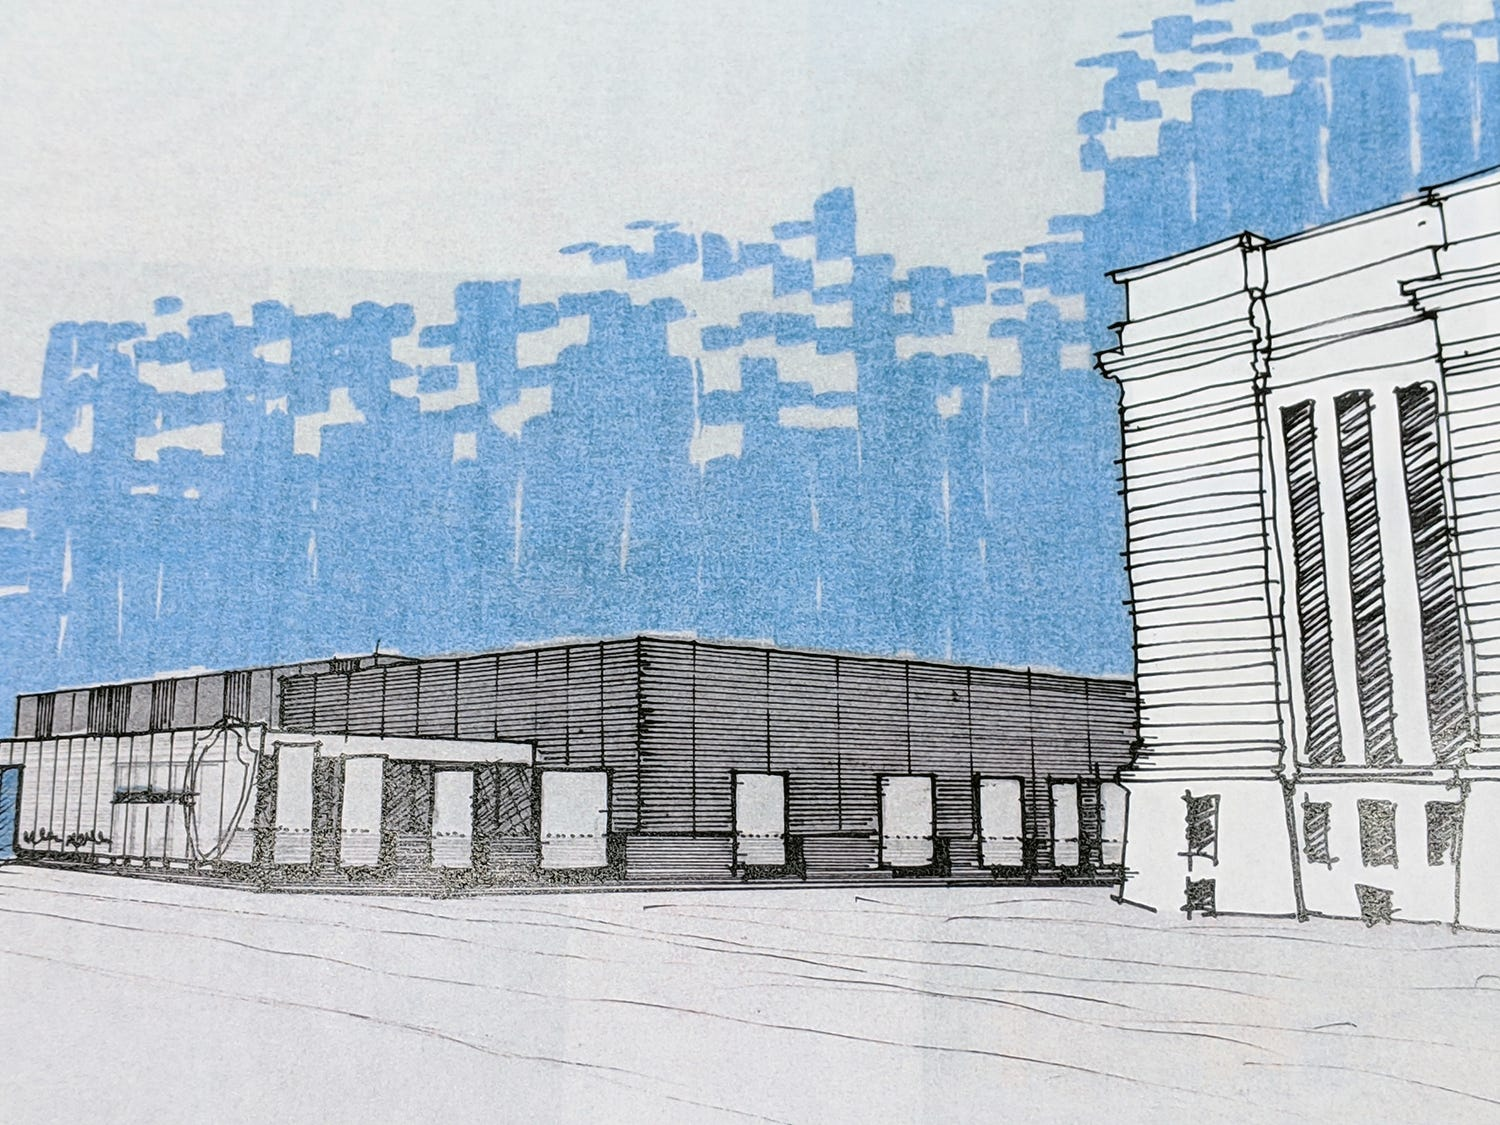 Here is an artist's rendering of the new UFD data center that will incorporate the old York County Prison. The renderings are by Warehaus.